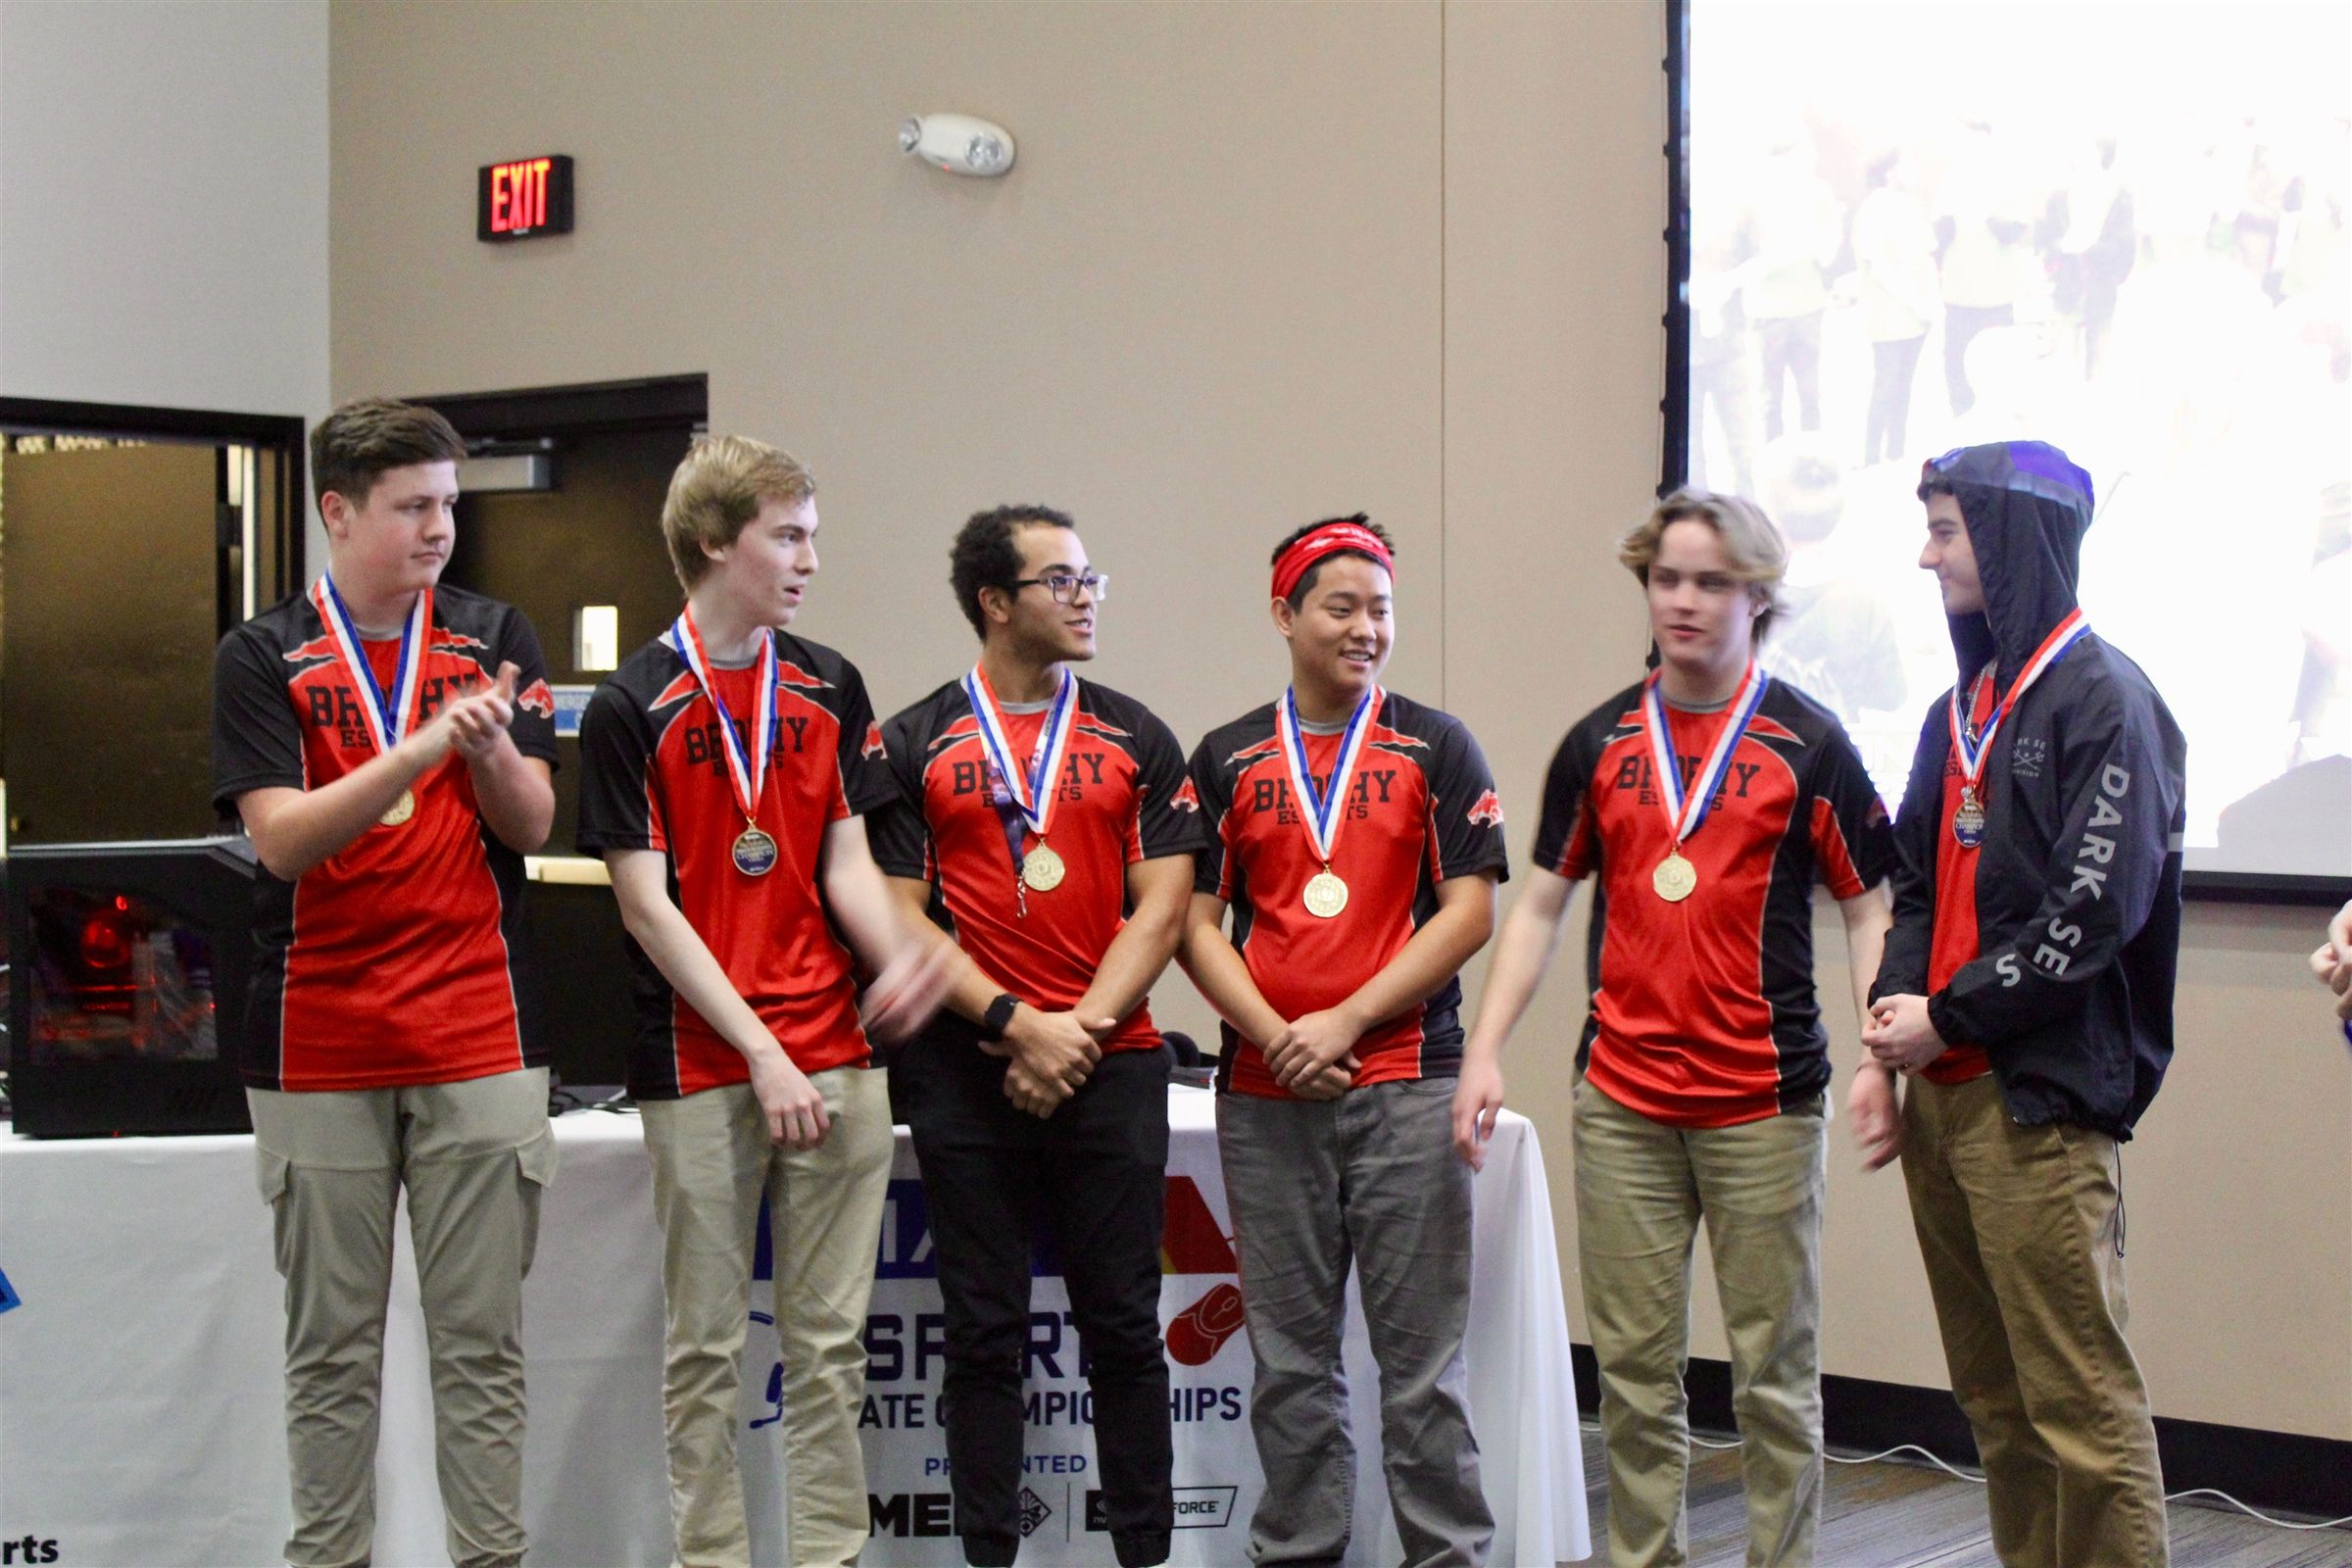 The Rocket League Team (Brophy Iota) and League of Legends Team (Brophy Initium) brought home the first AIA esports state titles.